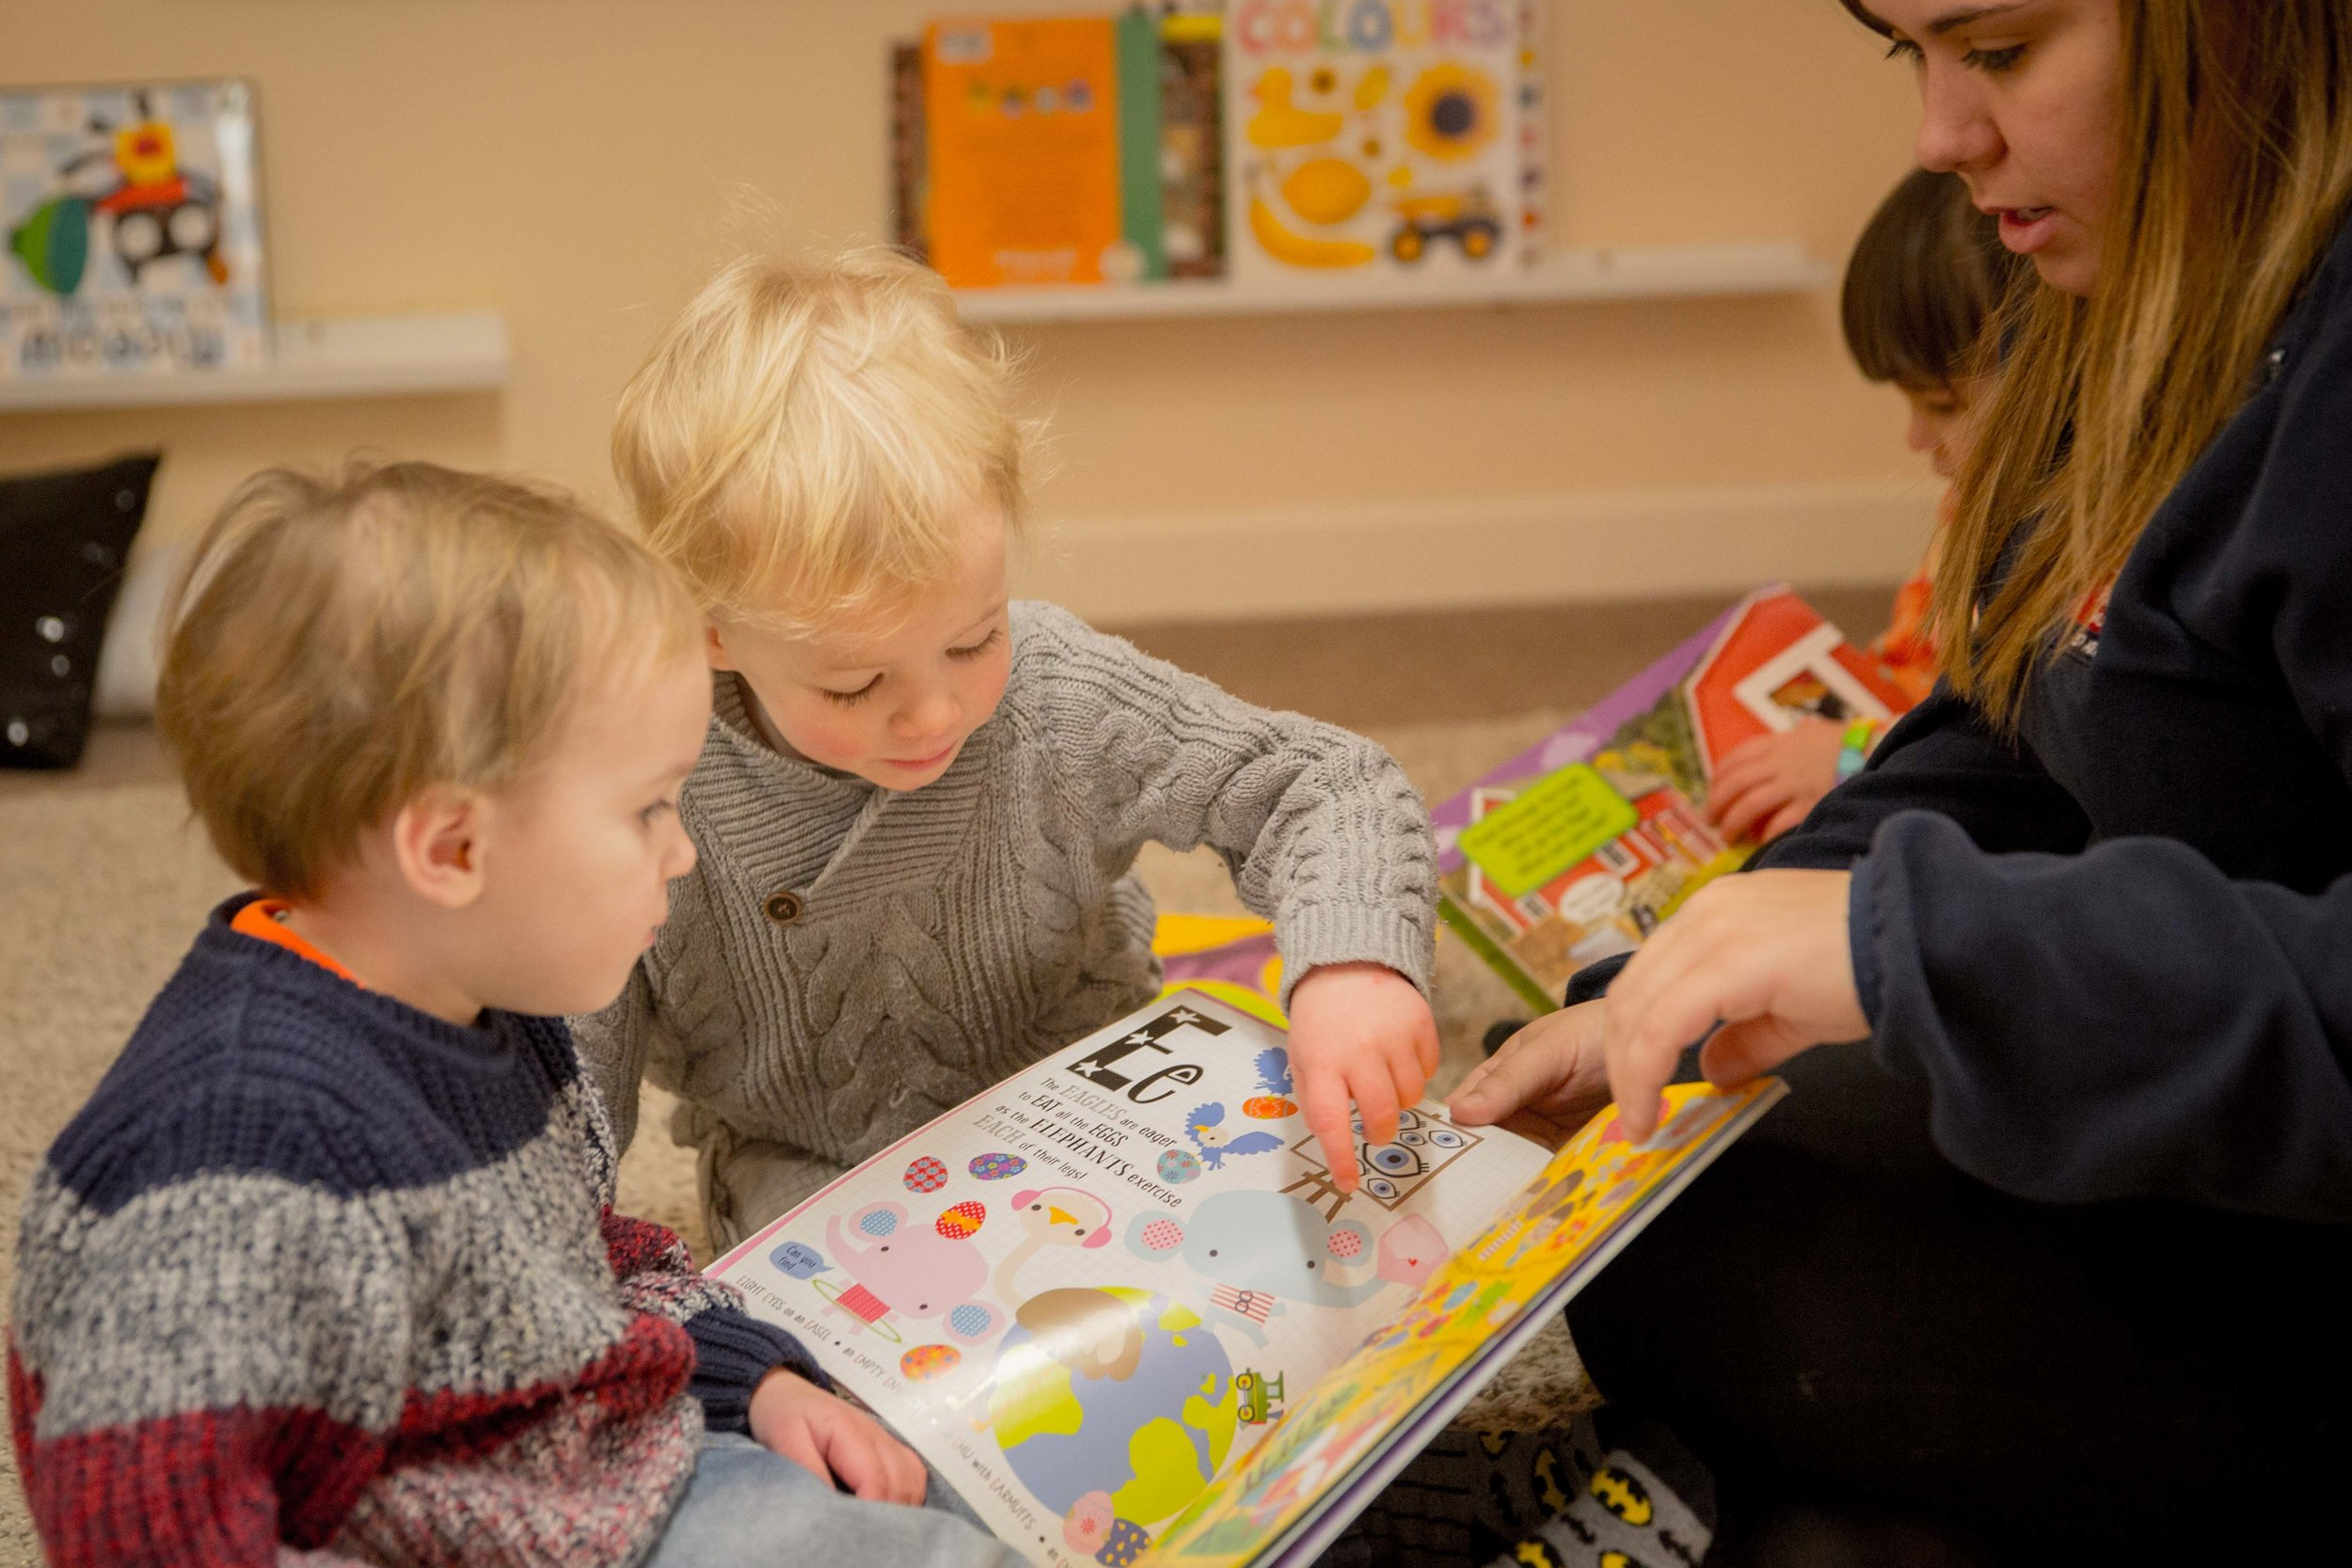 3-Commercial-nursery-school-photographer-chepstow-south-wales-natalia-smith-photography-12.jpg